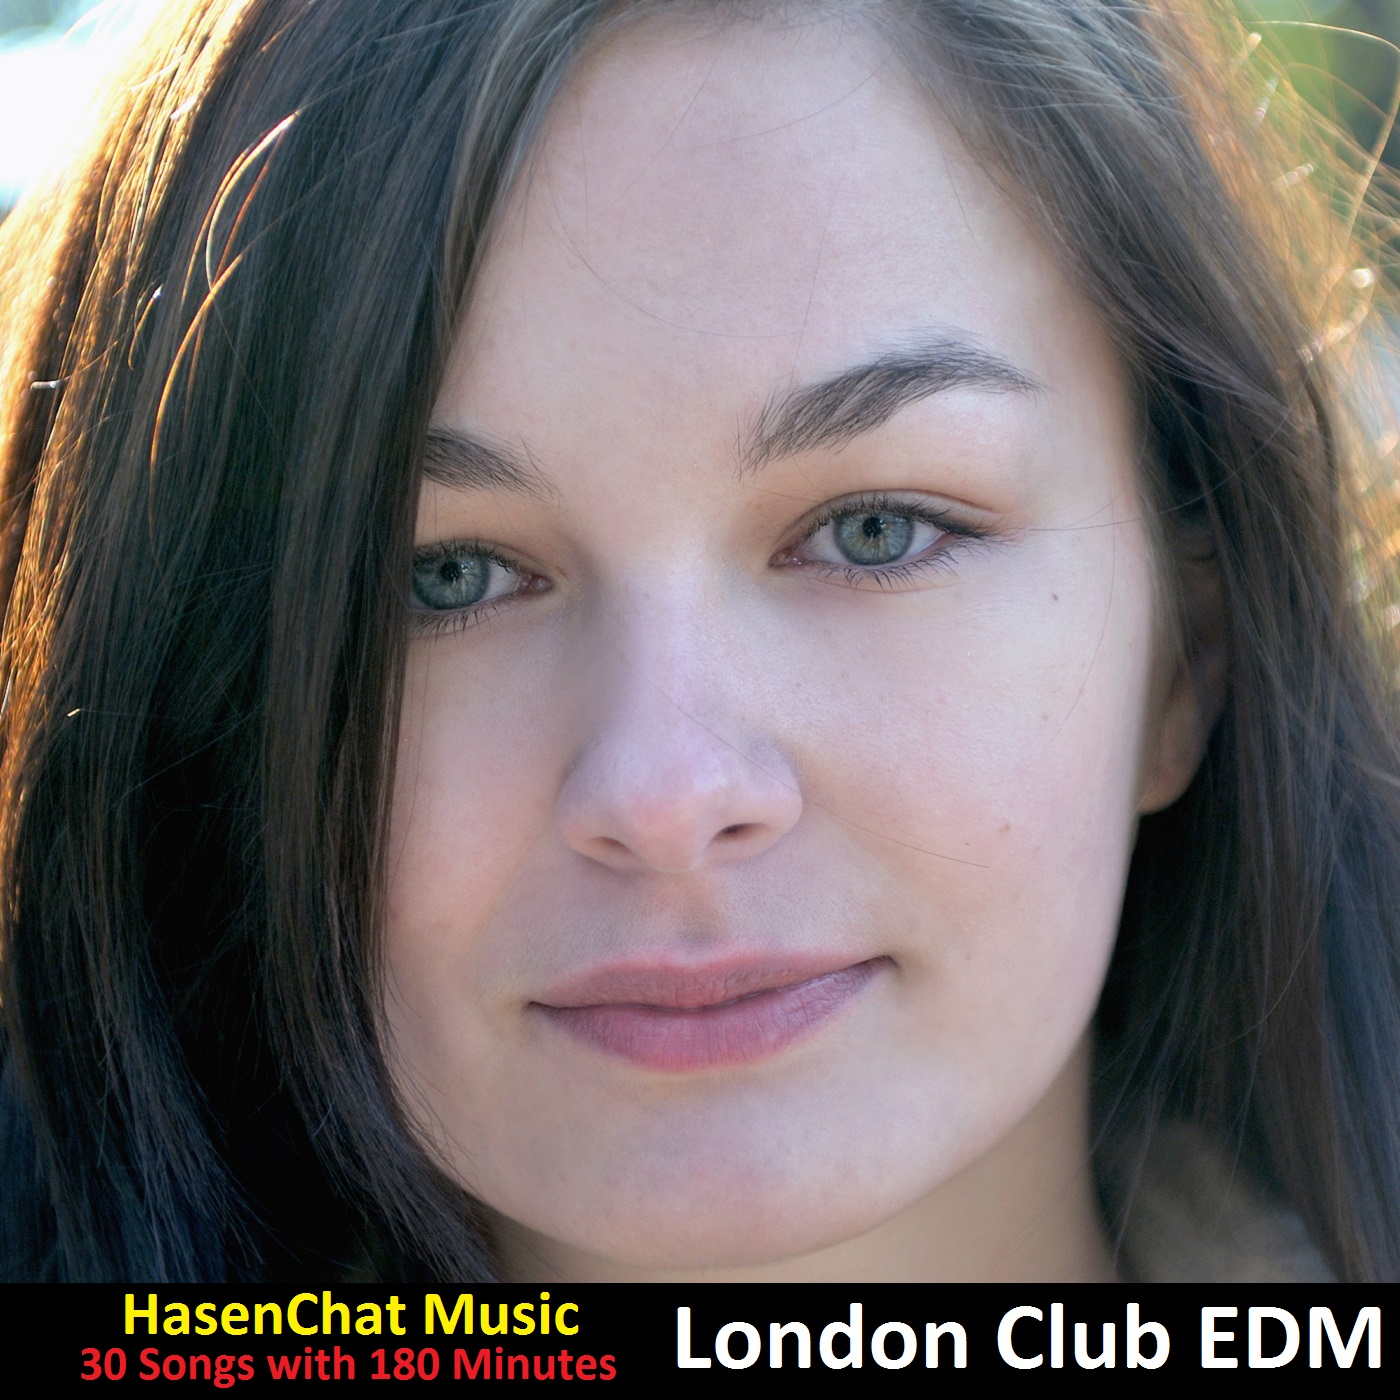 HasenChat Music - London Club EDM